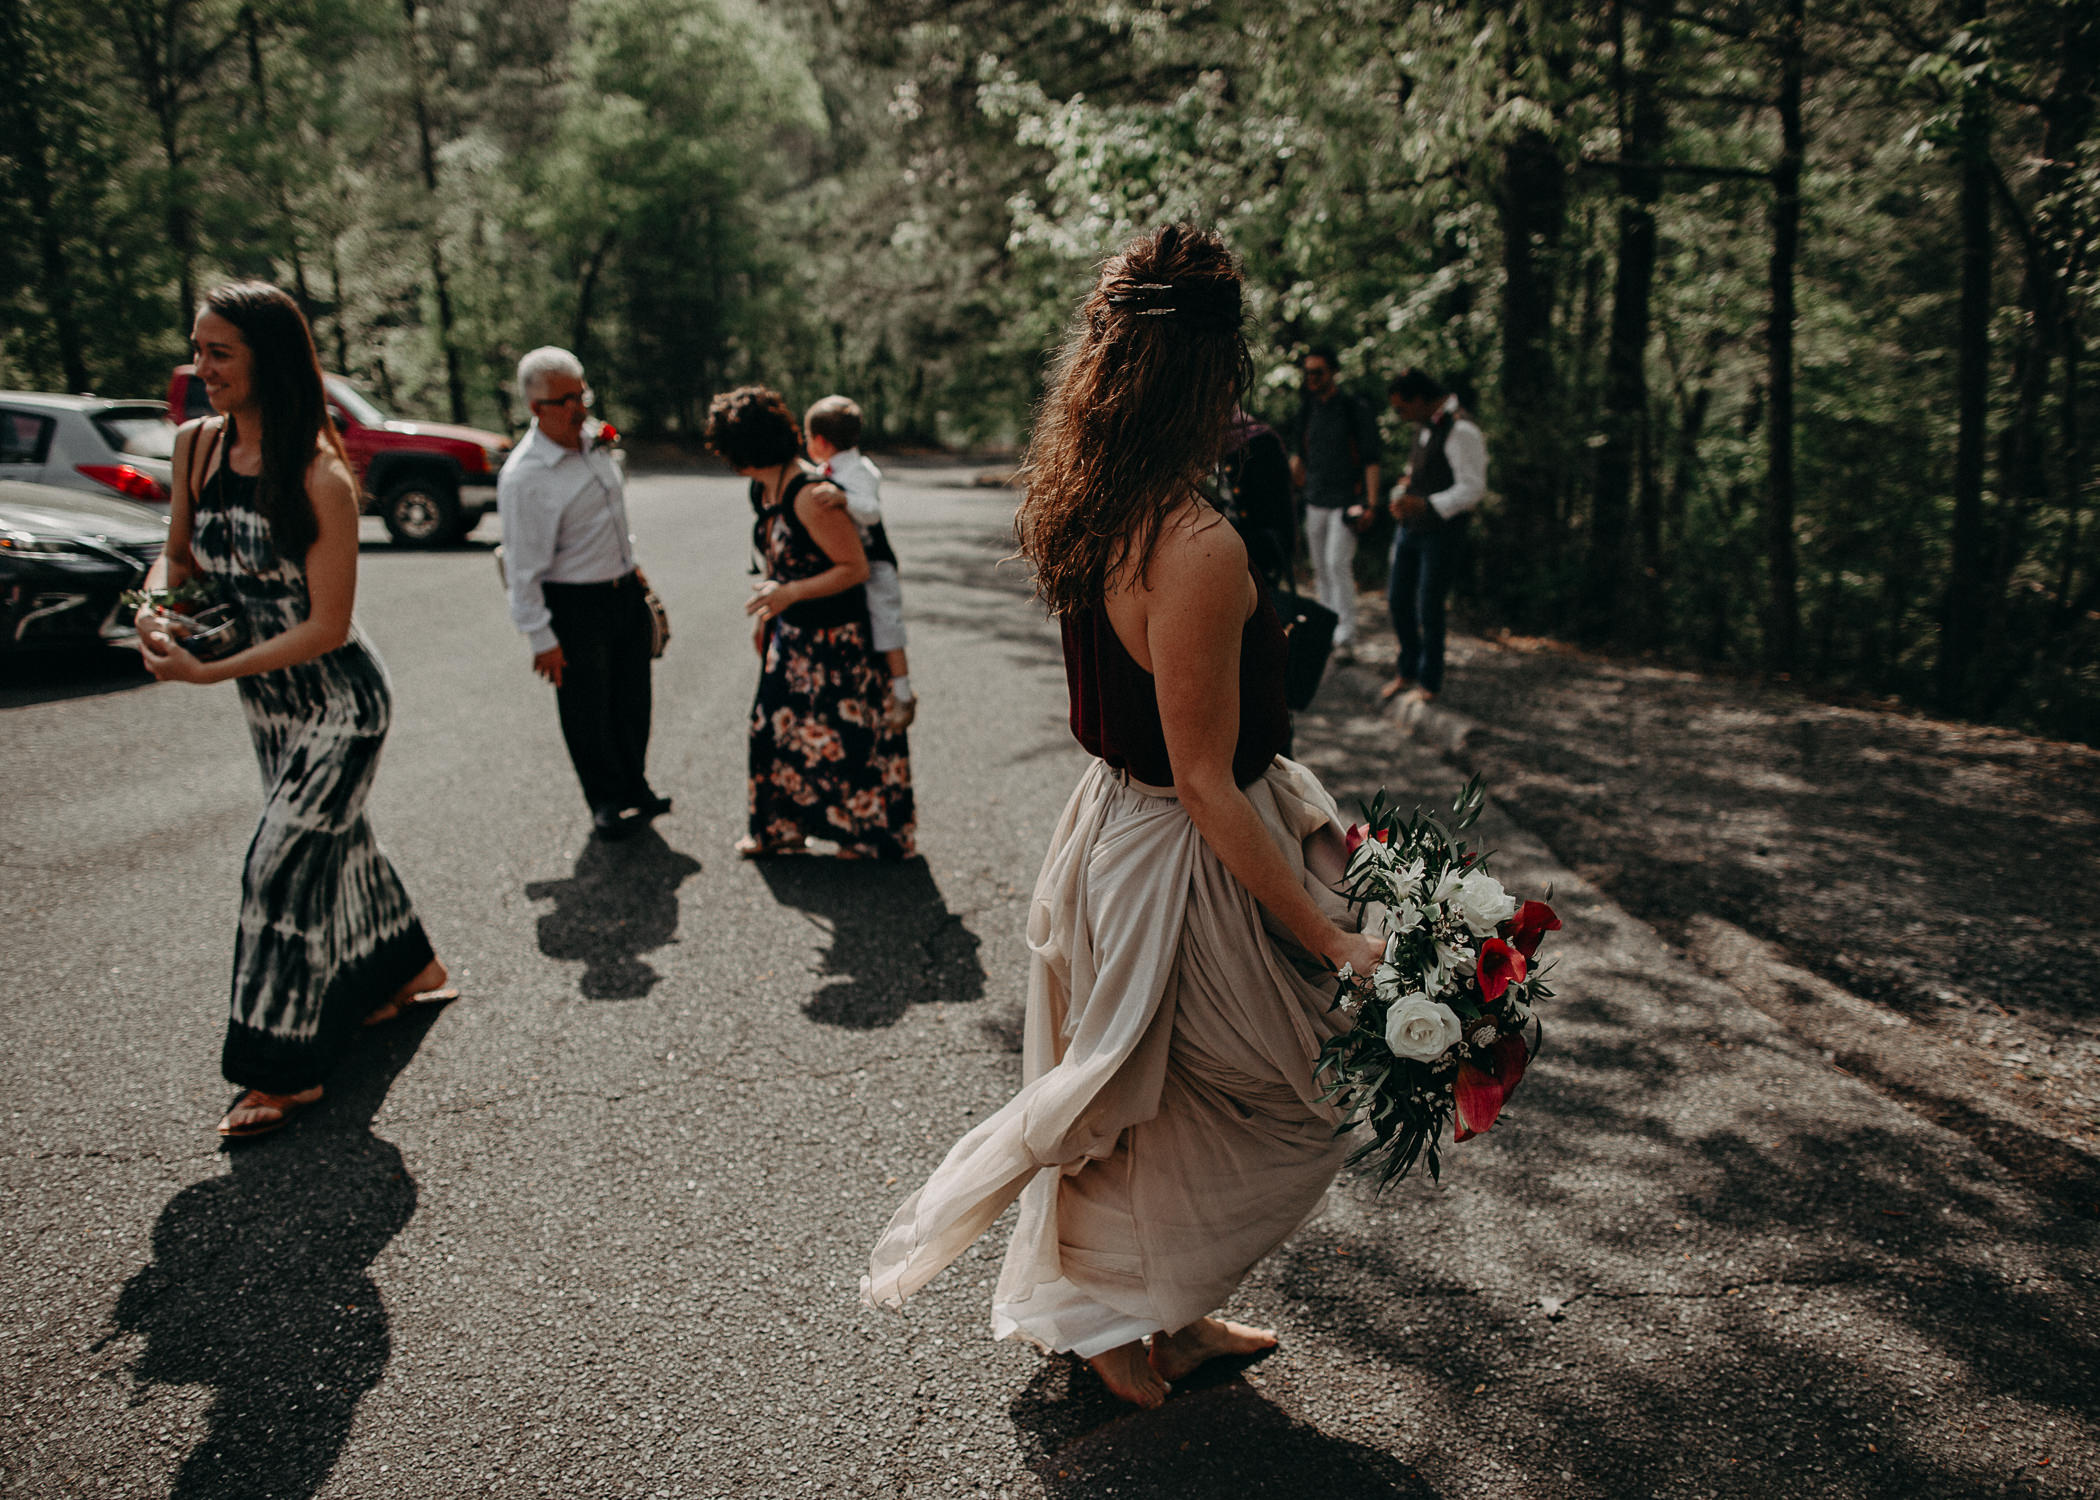 49- Forest wedding boho enchanched fairytale wedding atlanta - ga , intimate, elopement, nature, greens, good vibes. Aline Marin Photography .jpg